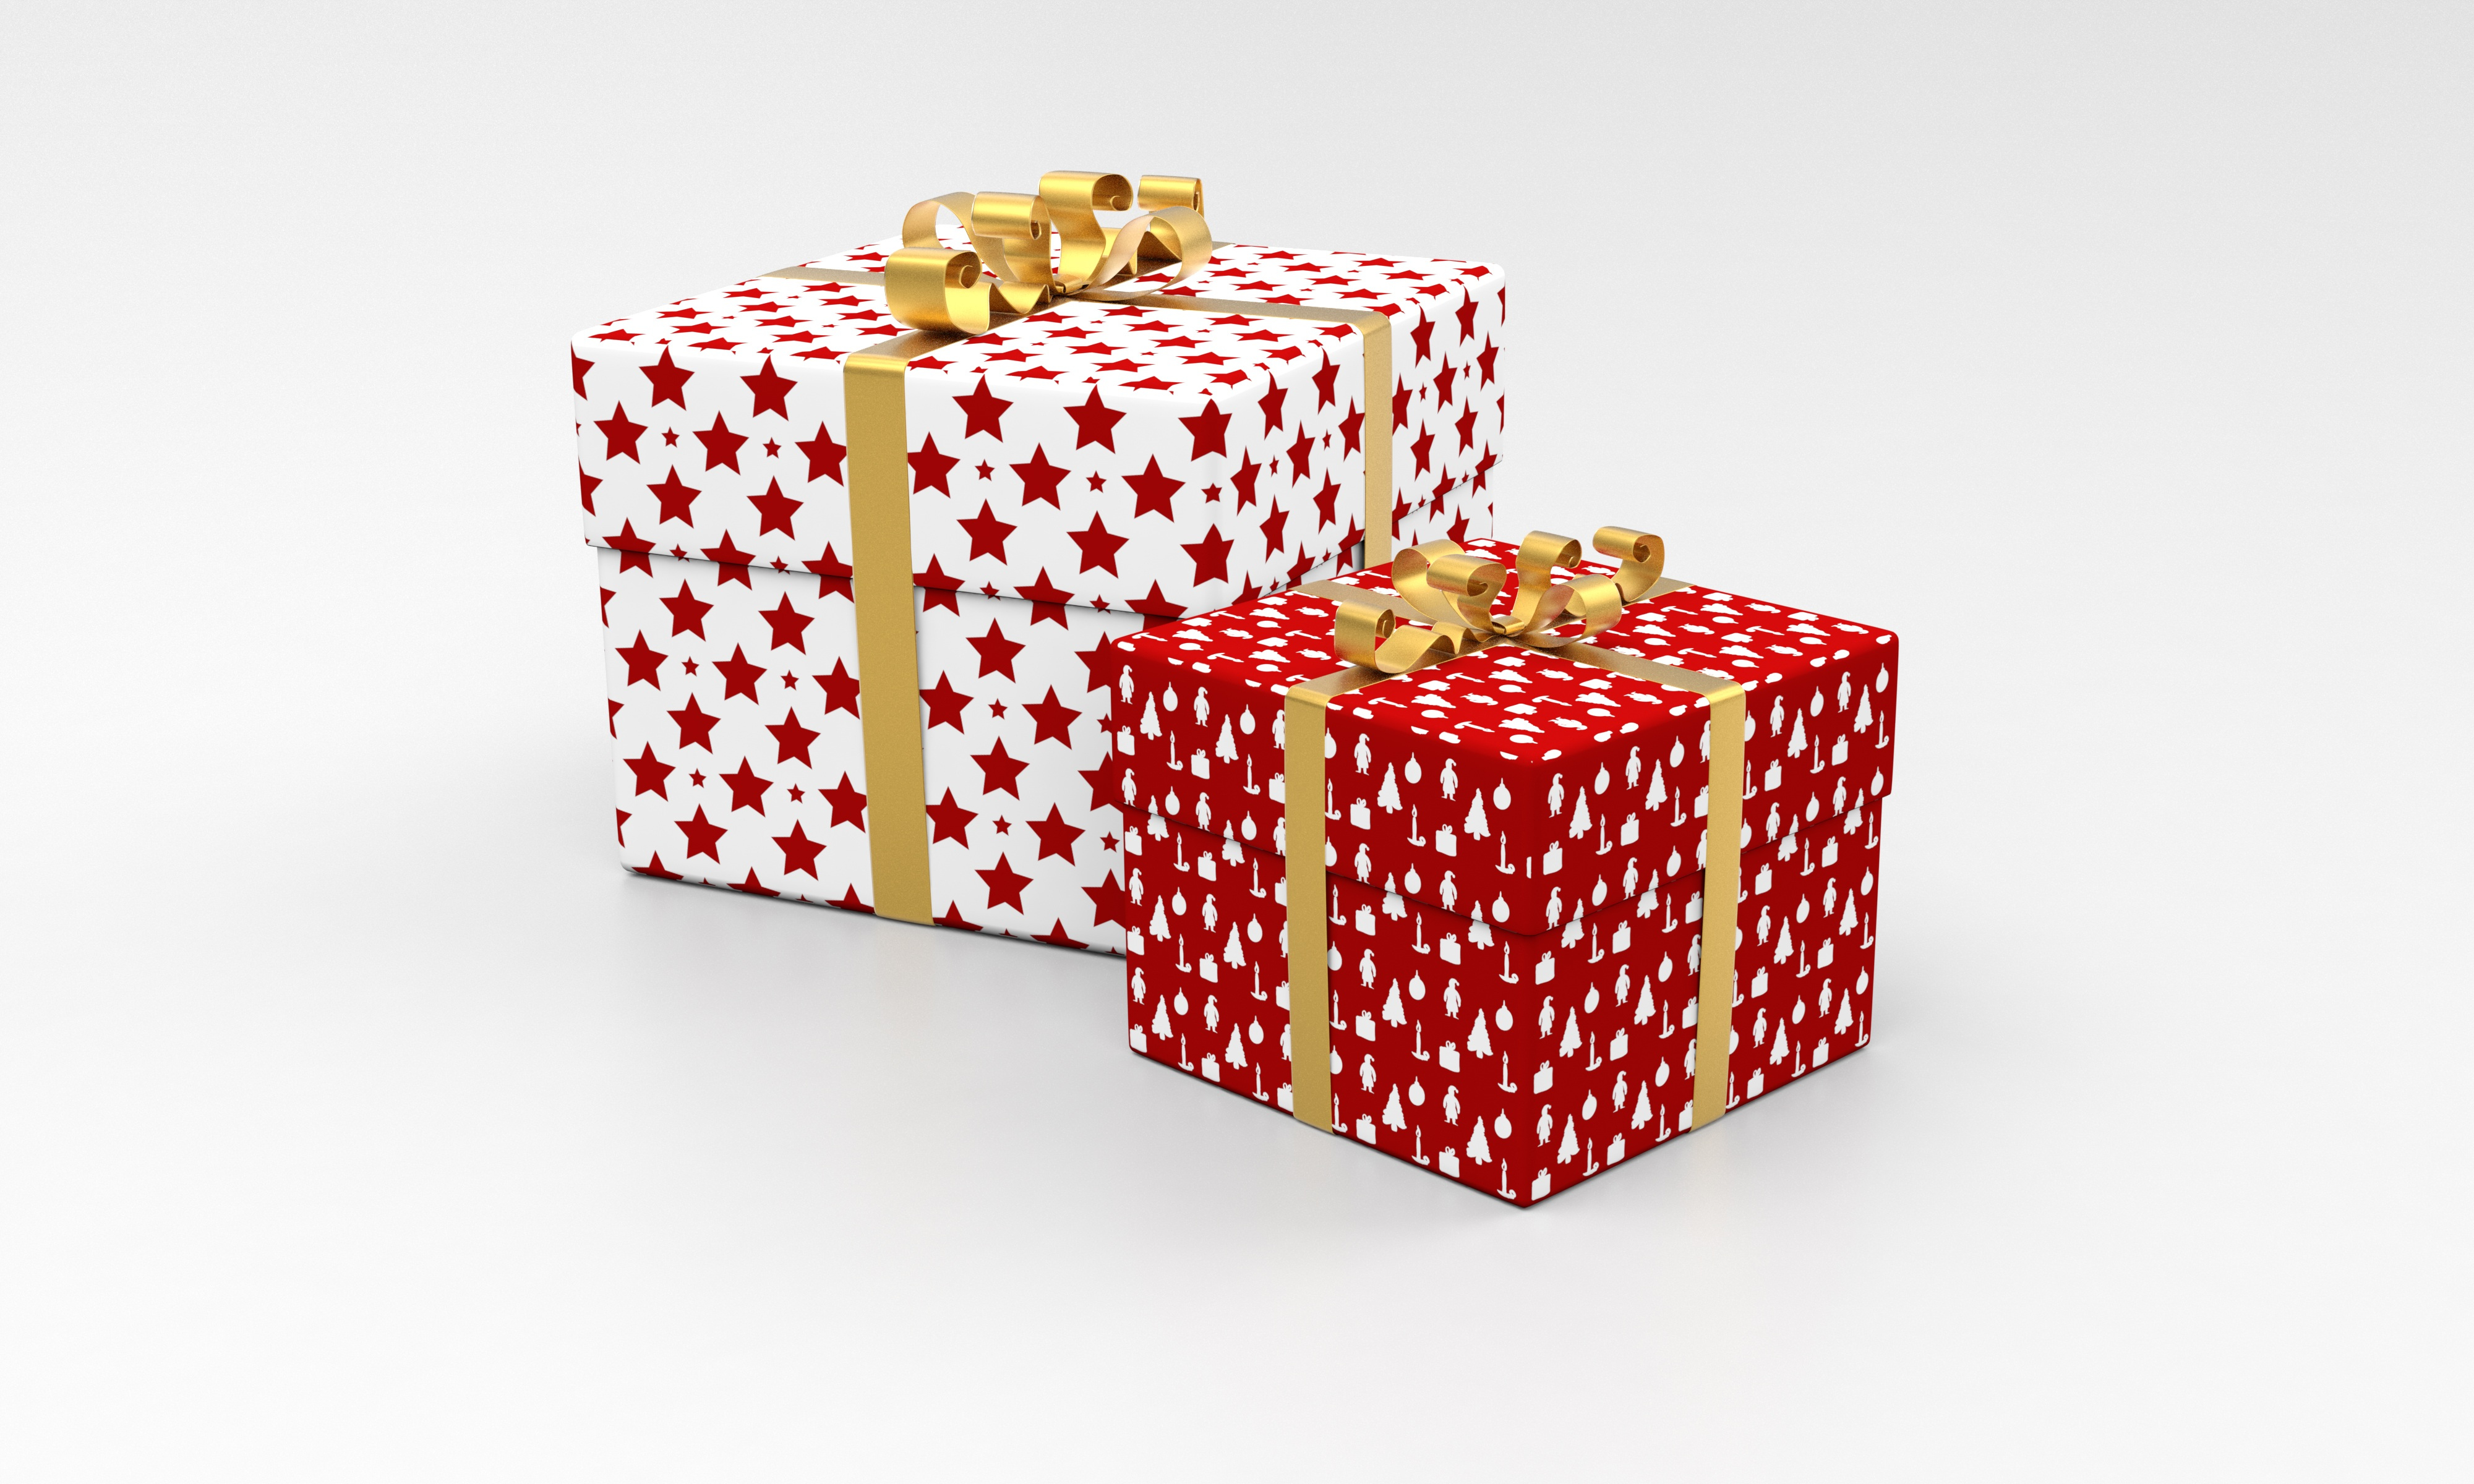 Free stock photos of gifts pexels free stock photo of gift celebration package boxes negle Choice Image